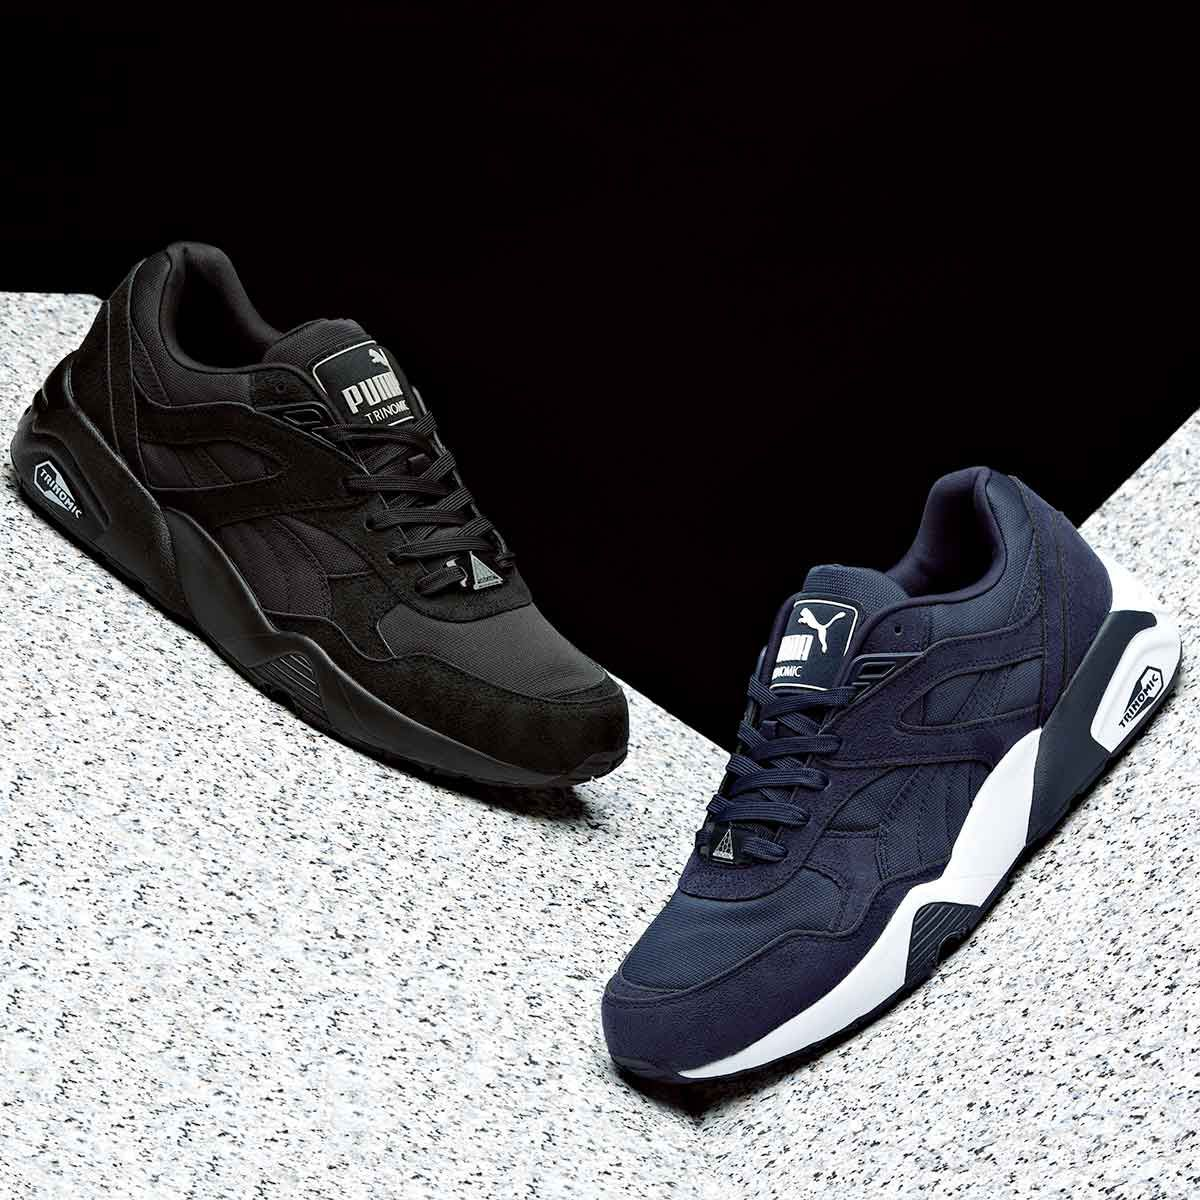 new arrival e6e33 e08c4 The popular Puma Trinomic R698 Trainer in two brand new colour-ways. Black    Drizzle and Peacoat   White.